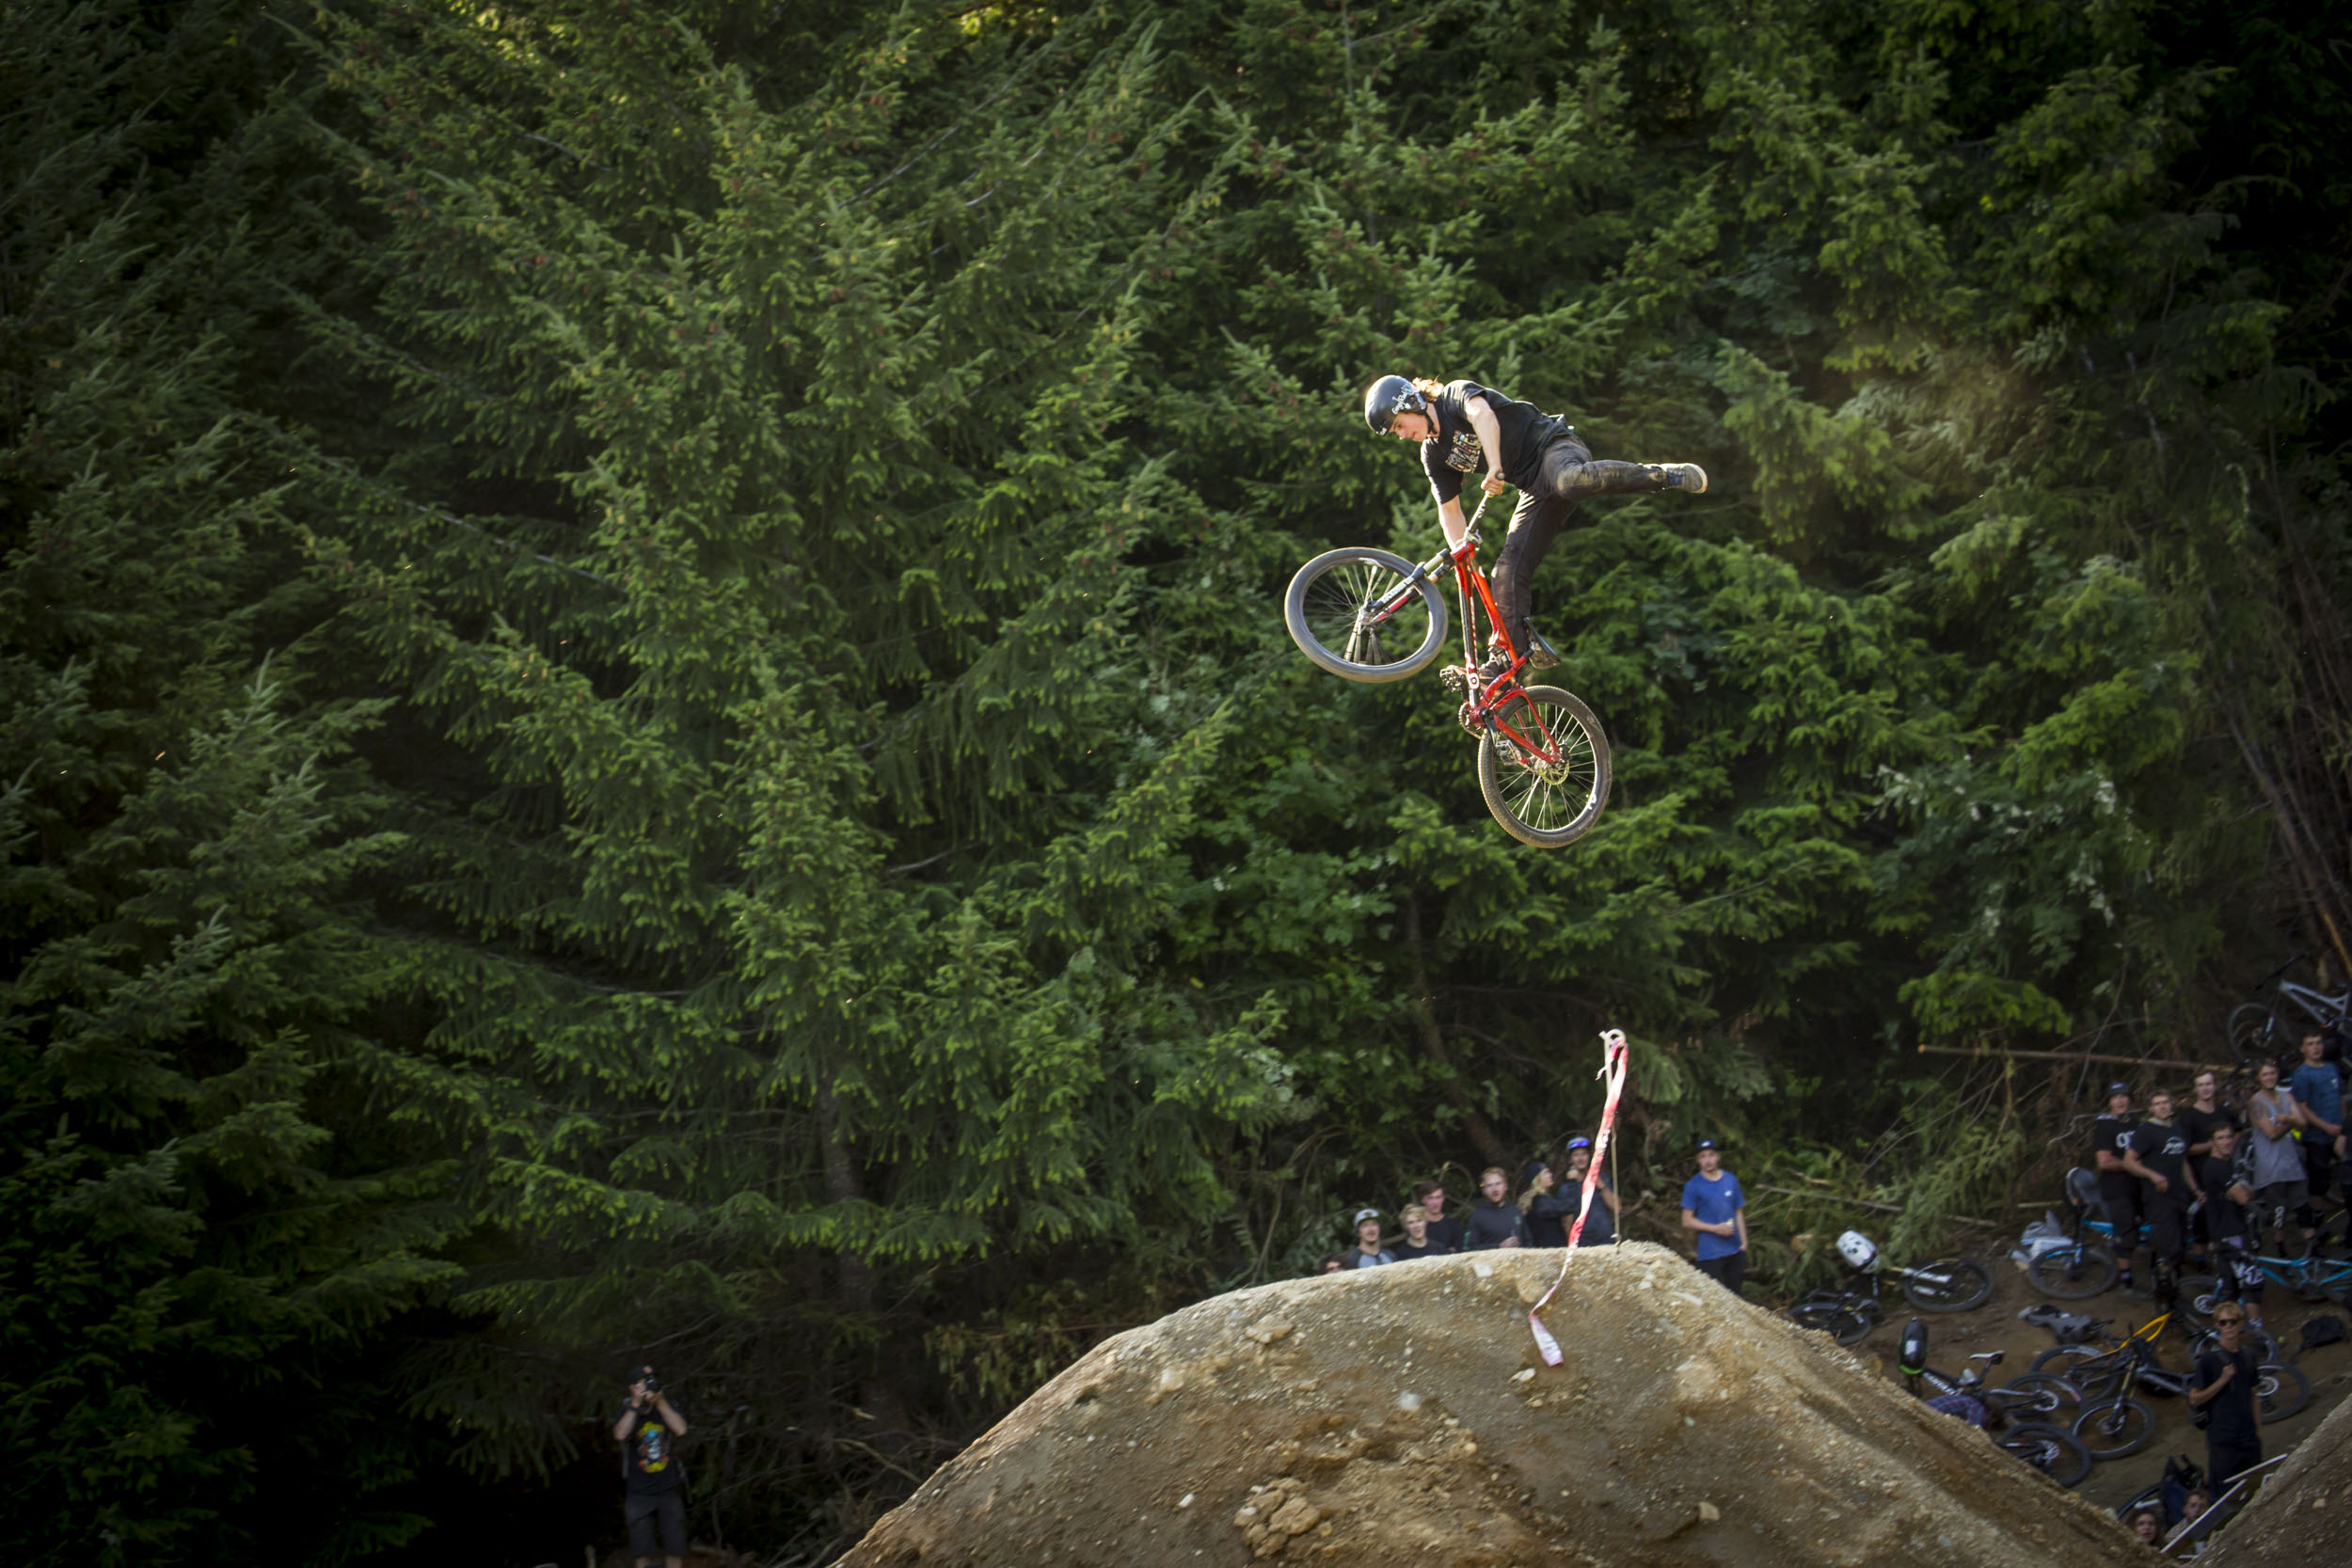 Hardtail pride and tail whips